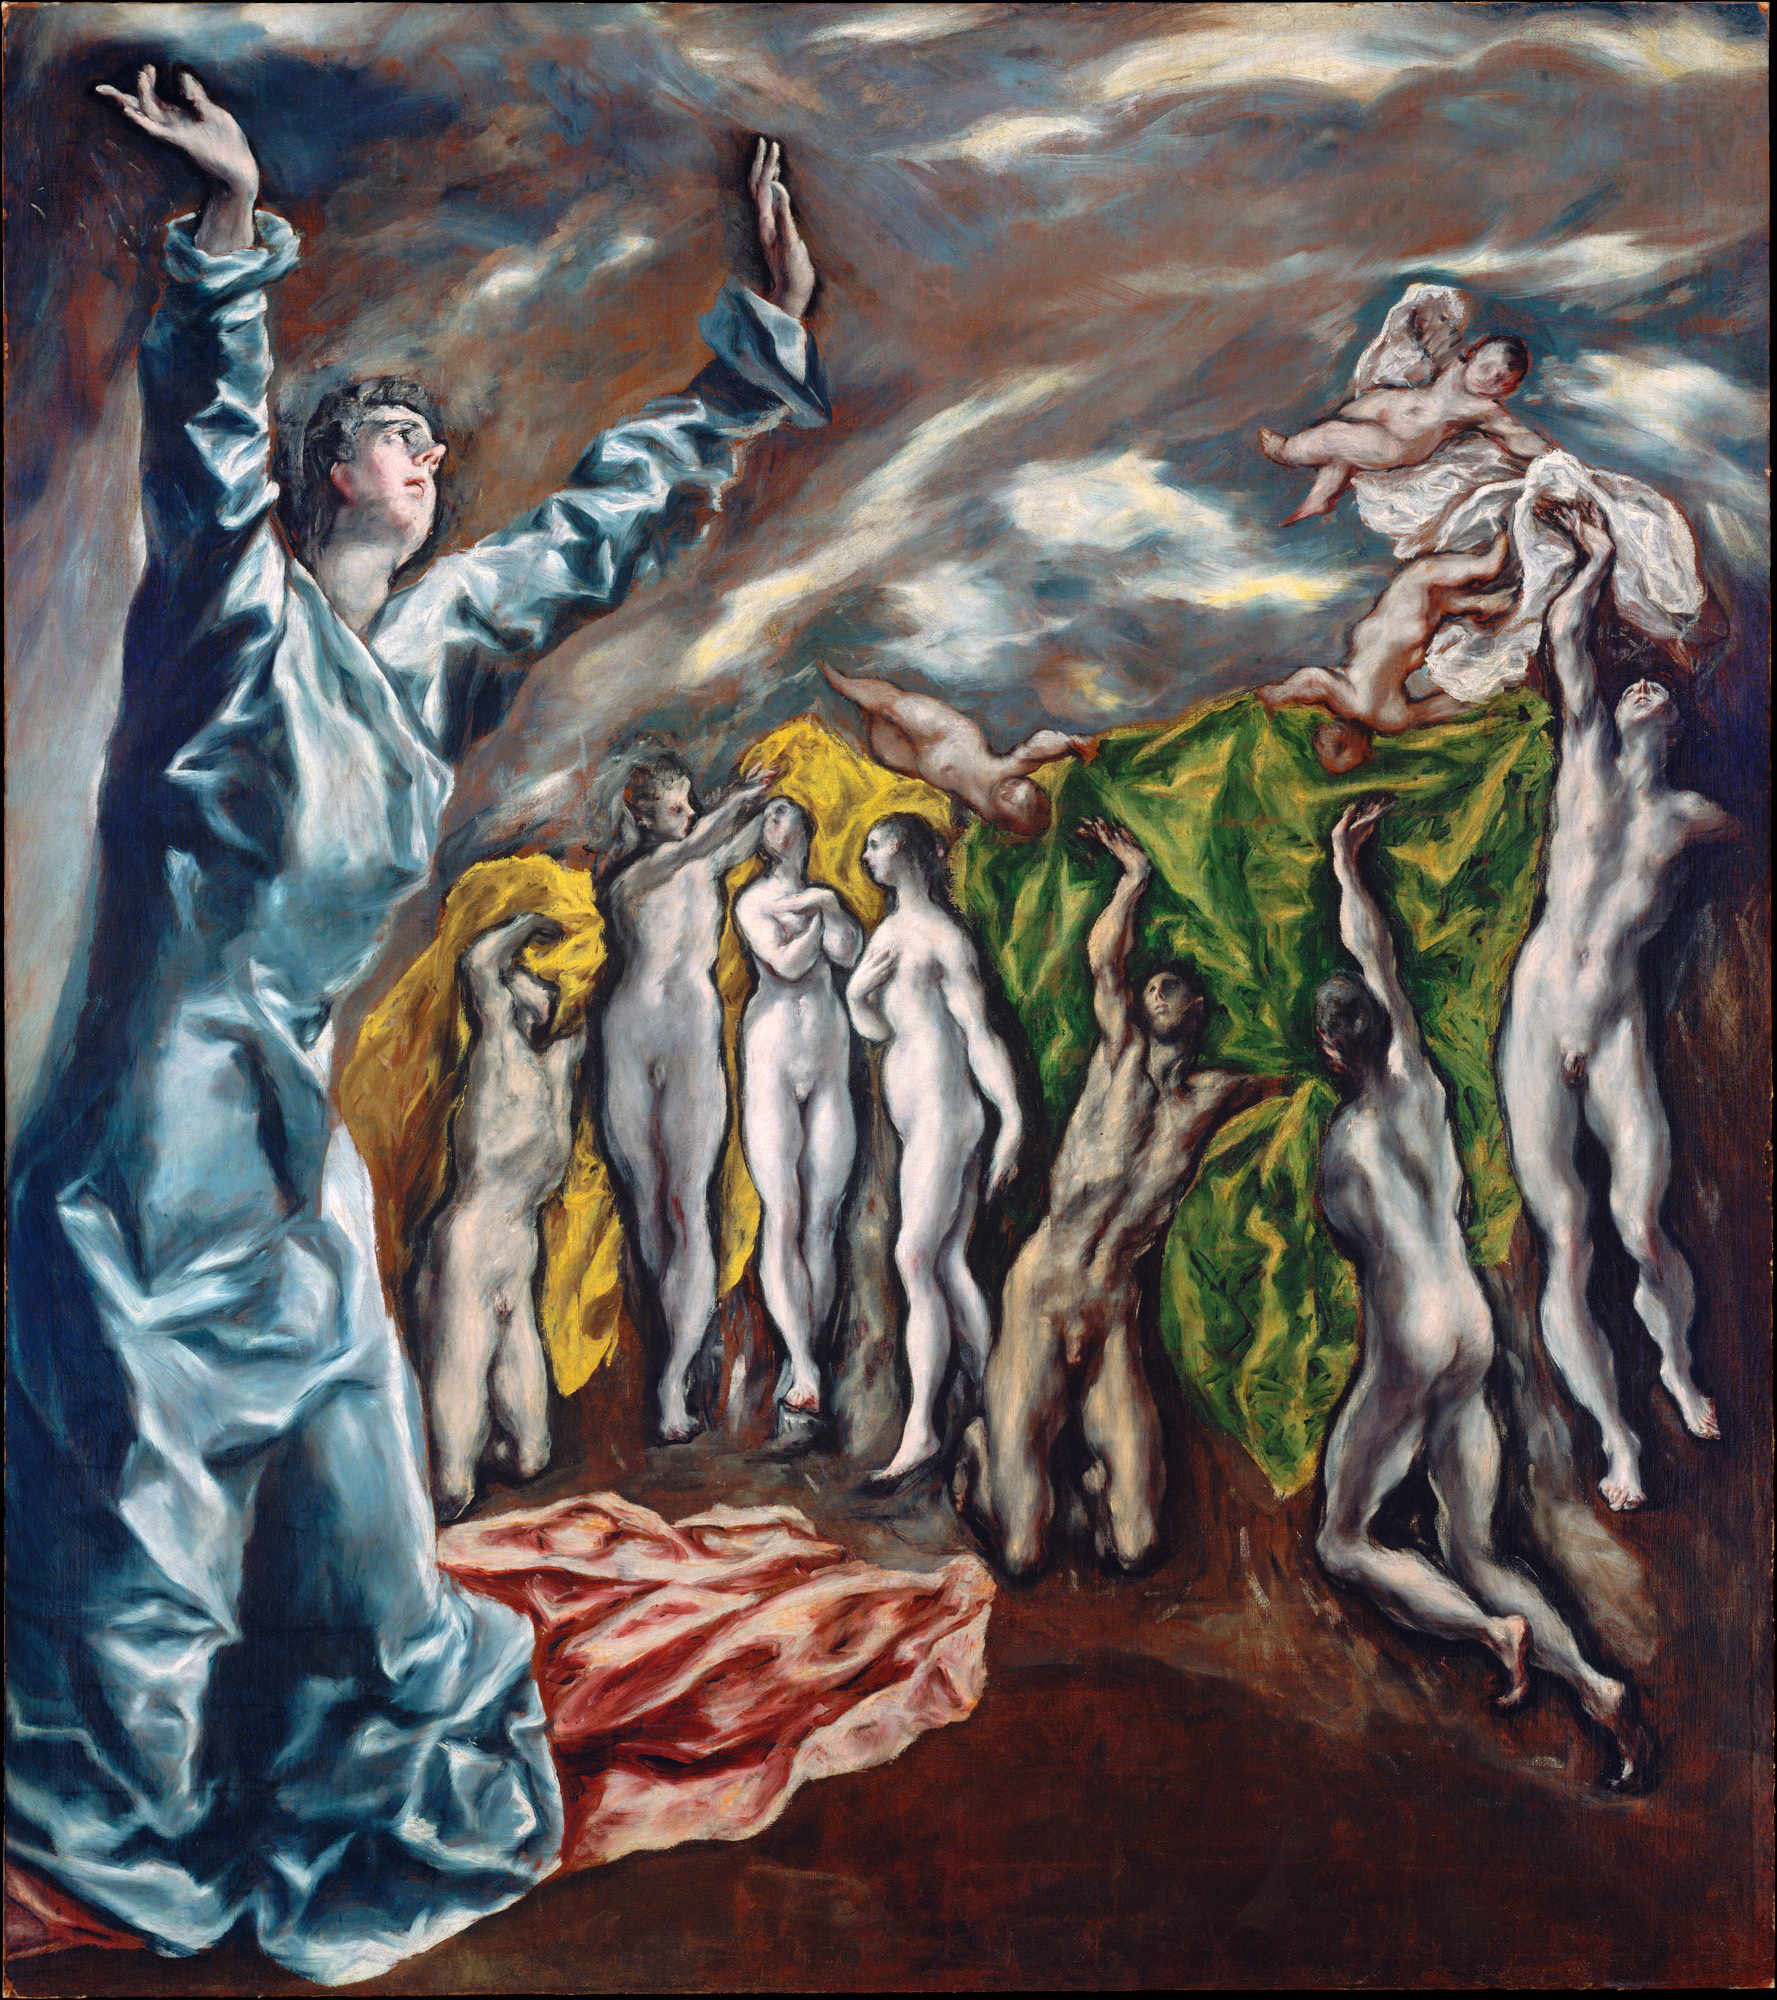 The Vision of Saint John - by El Greco (Doménikos Theotokópoulos) 87.5 × 76 inch Oil on canvas